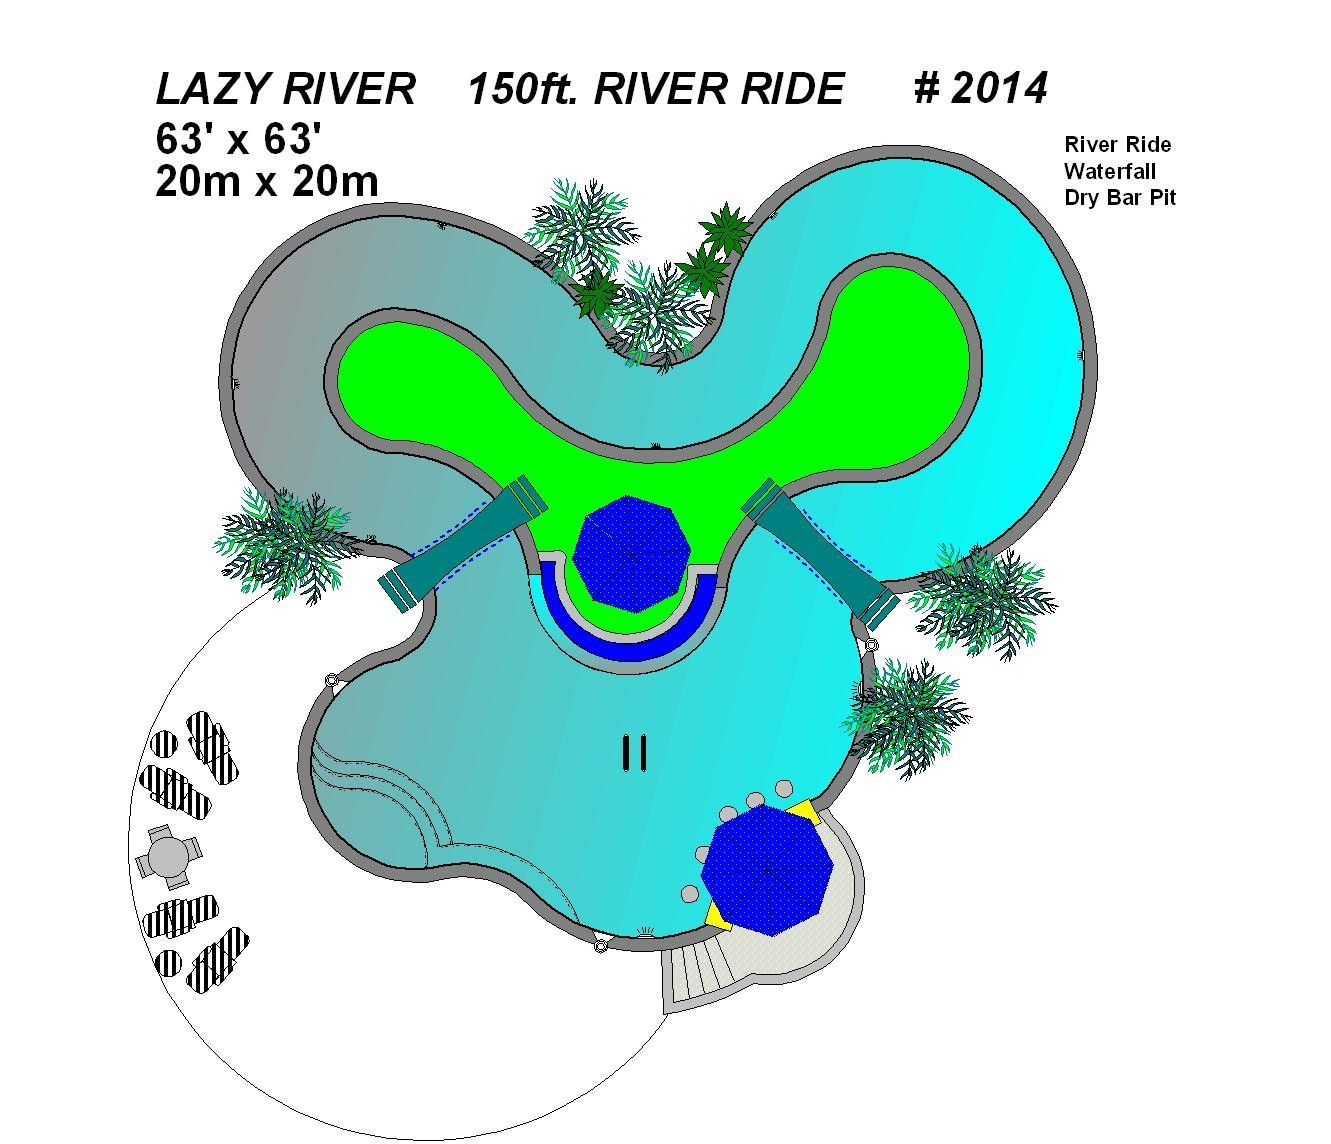 backyard lazy river cost - google search | swimming pools